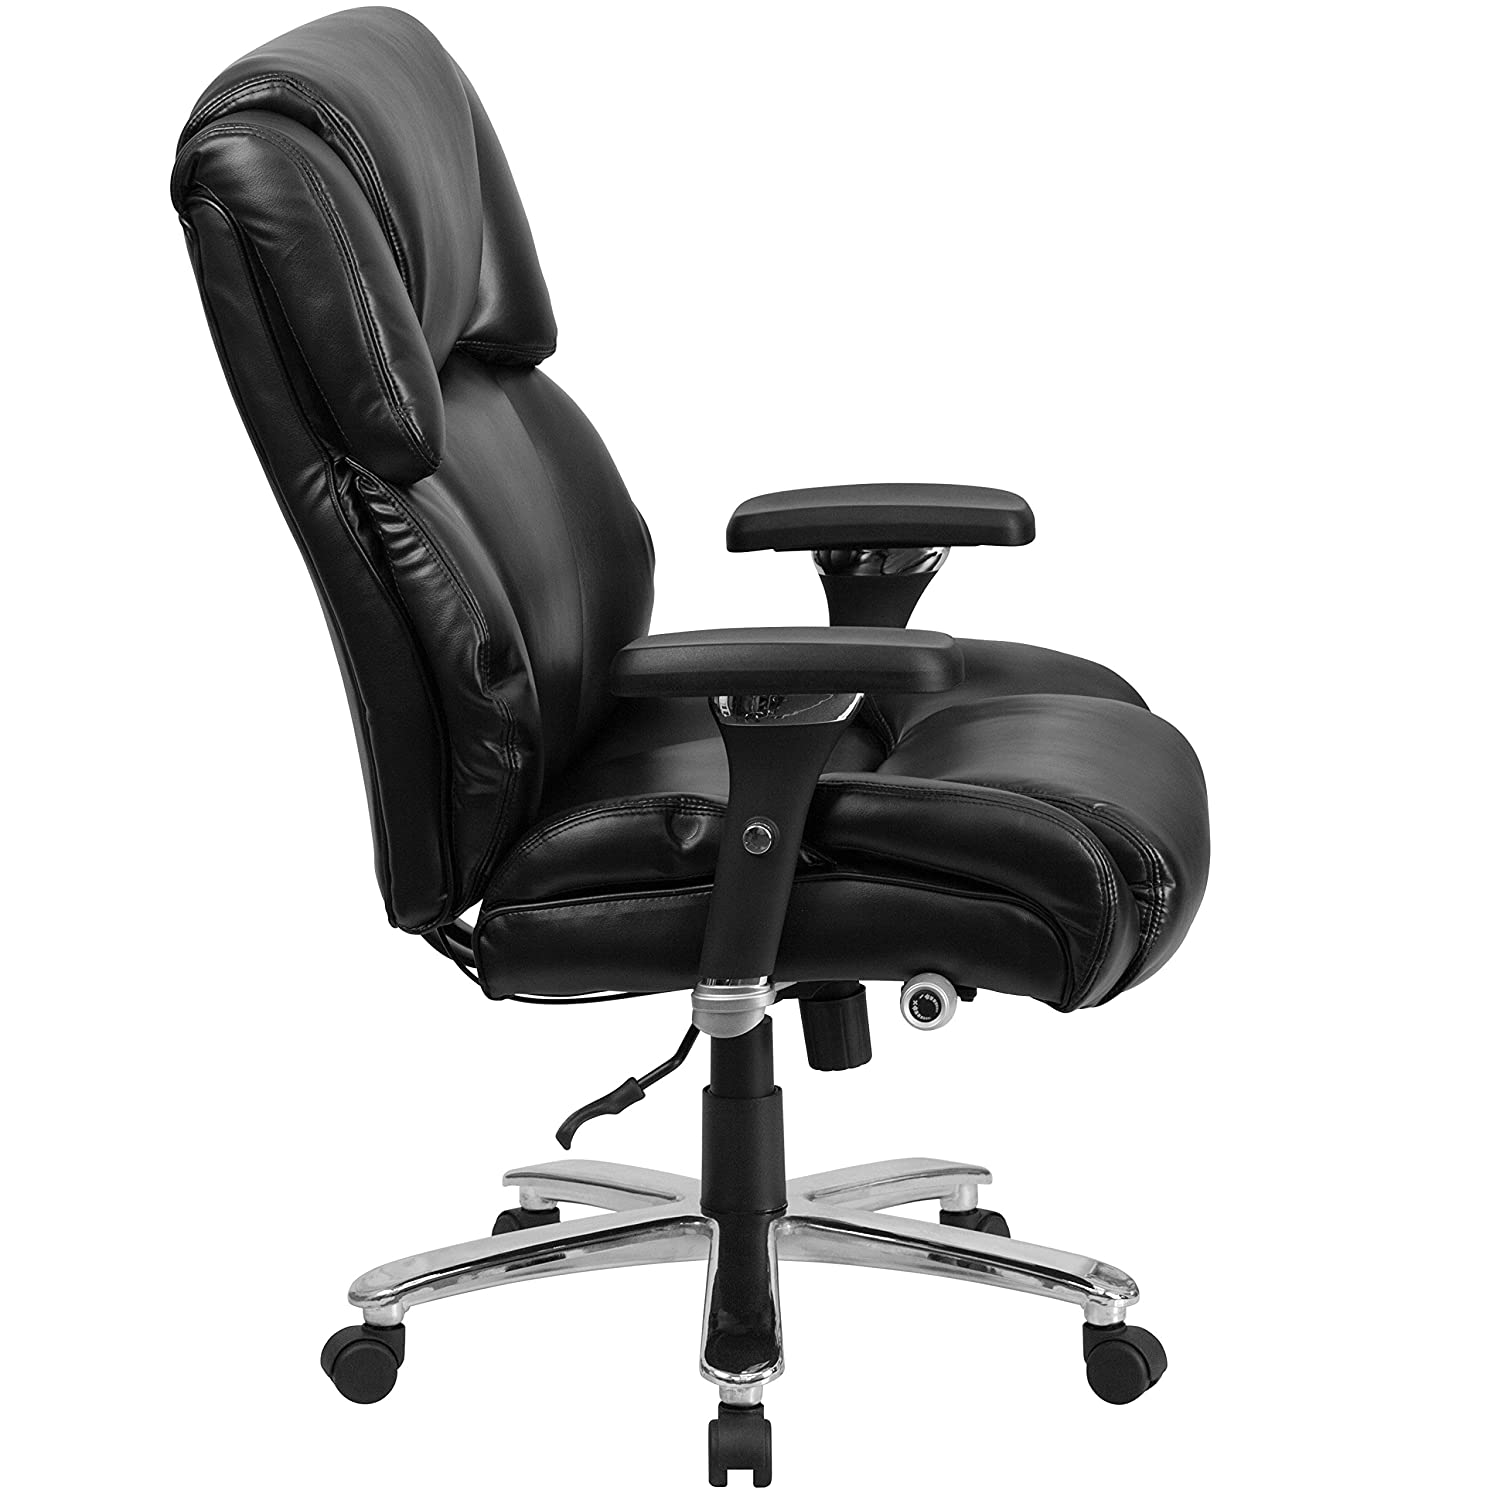 Office Chairs With 400 Lbs Capacity For Big Amp Heavy People